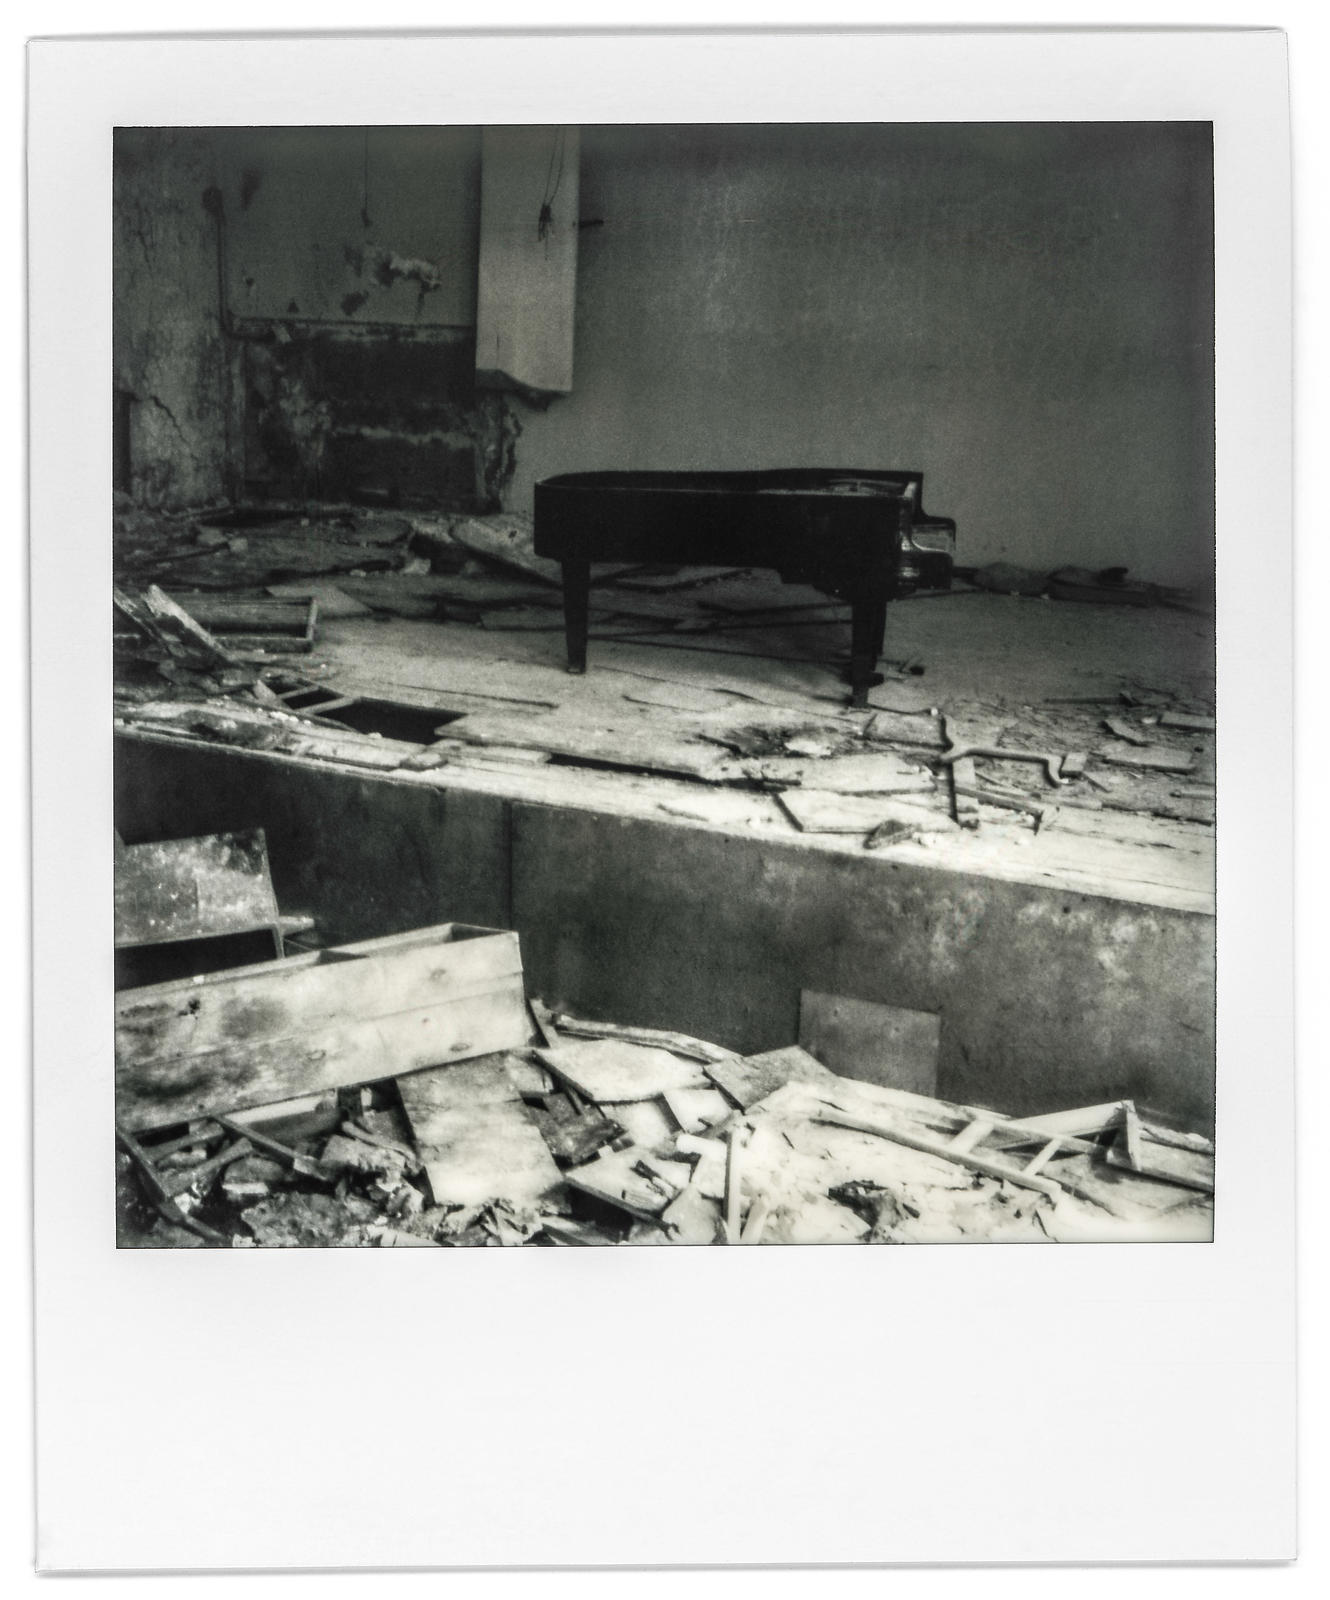 photo-polaroid-tchernobyl-chernobyl-30